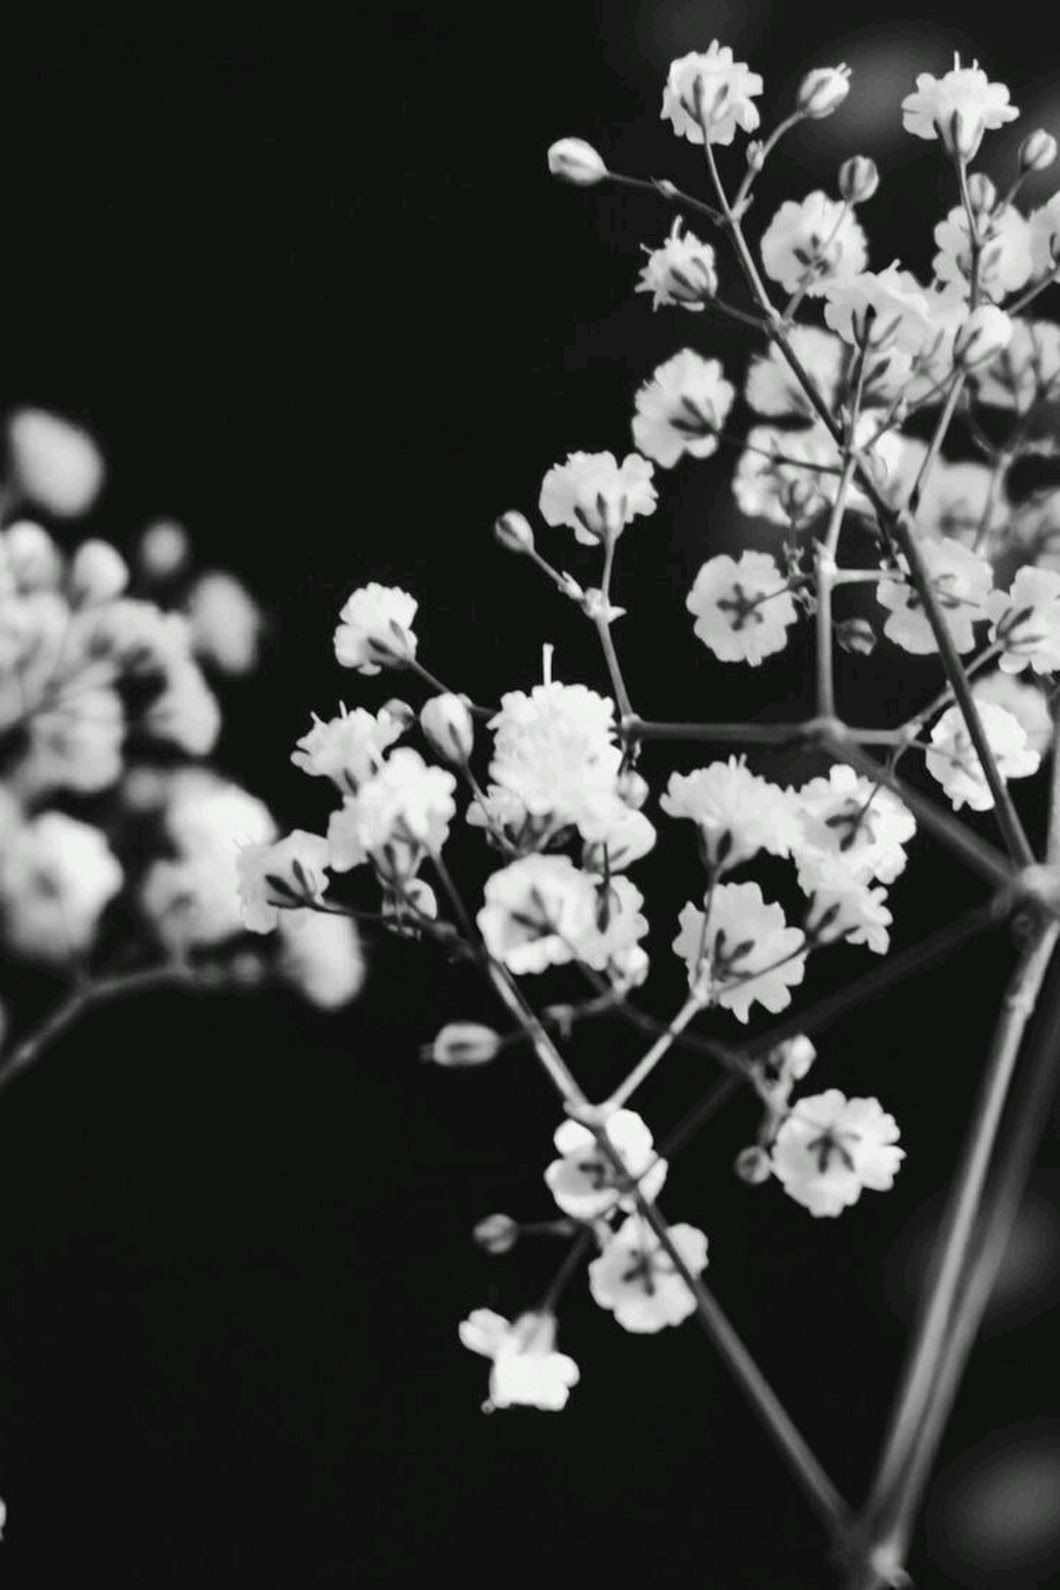 Rocío (With images) Black and white aesthetic, Black and